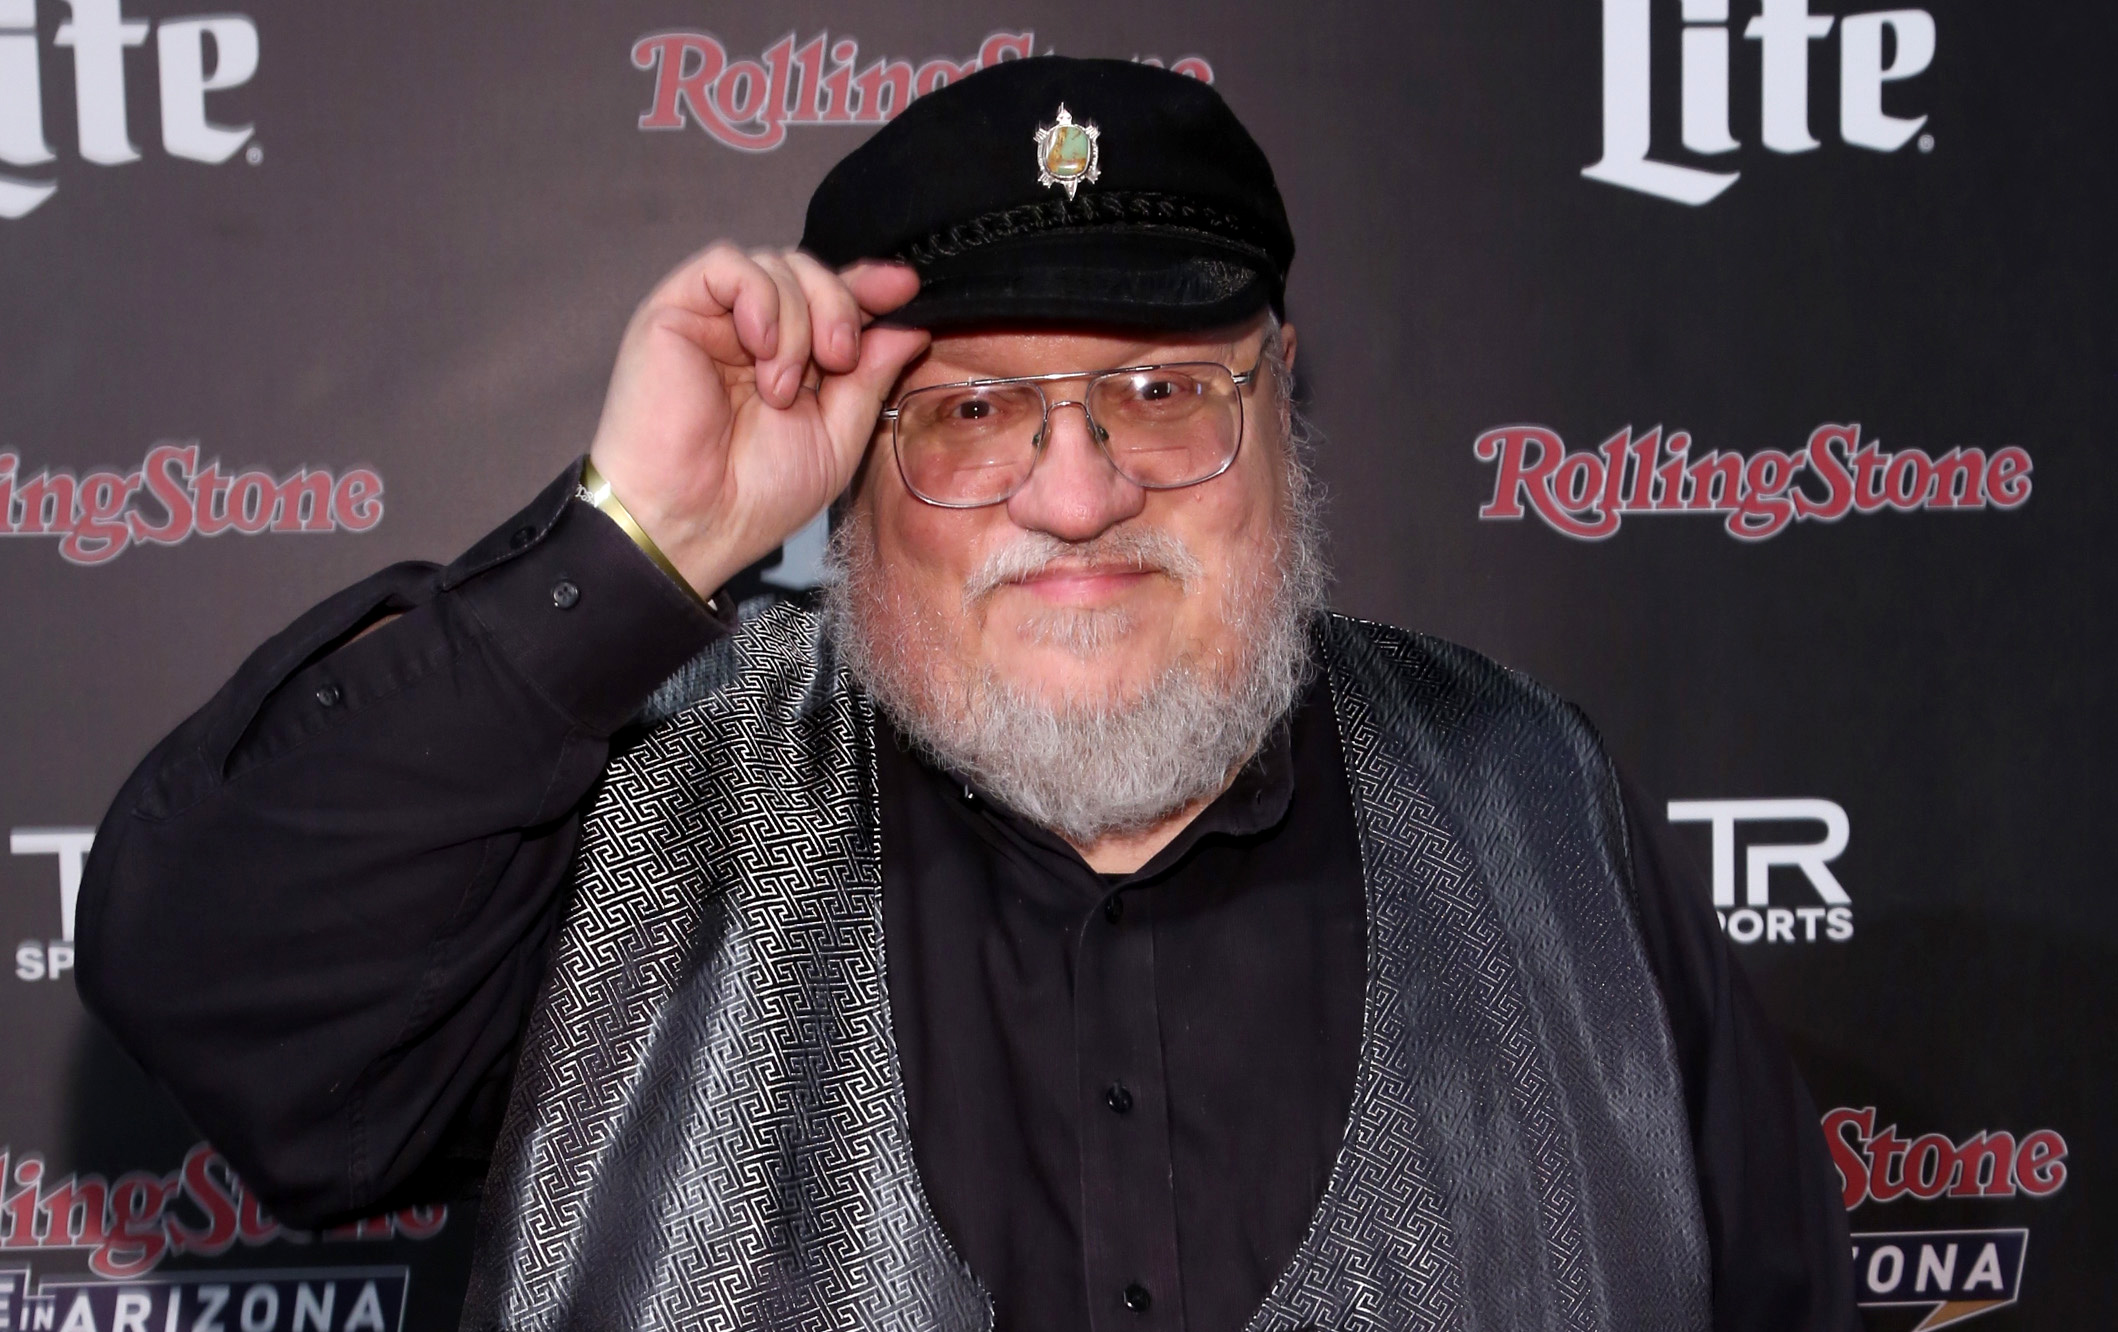 Next Game of Thrones Book Release Date Accidentally Leaked george rr 02 getty